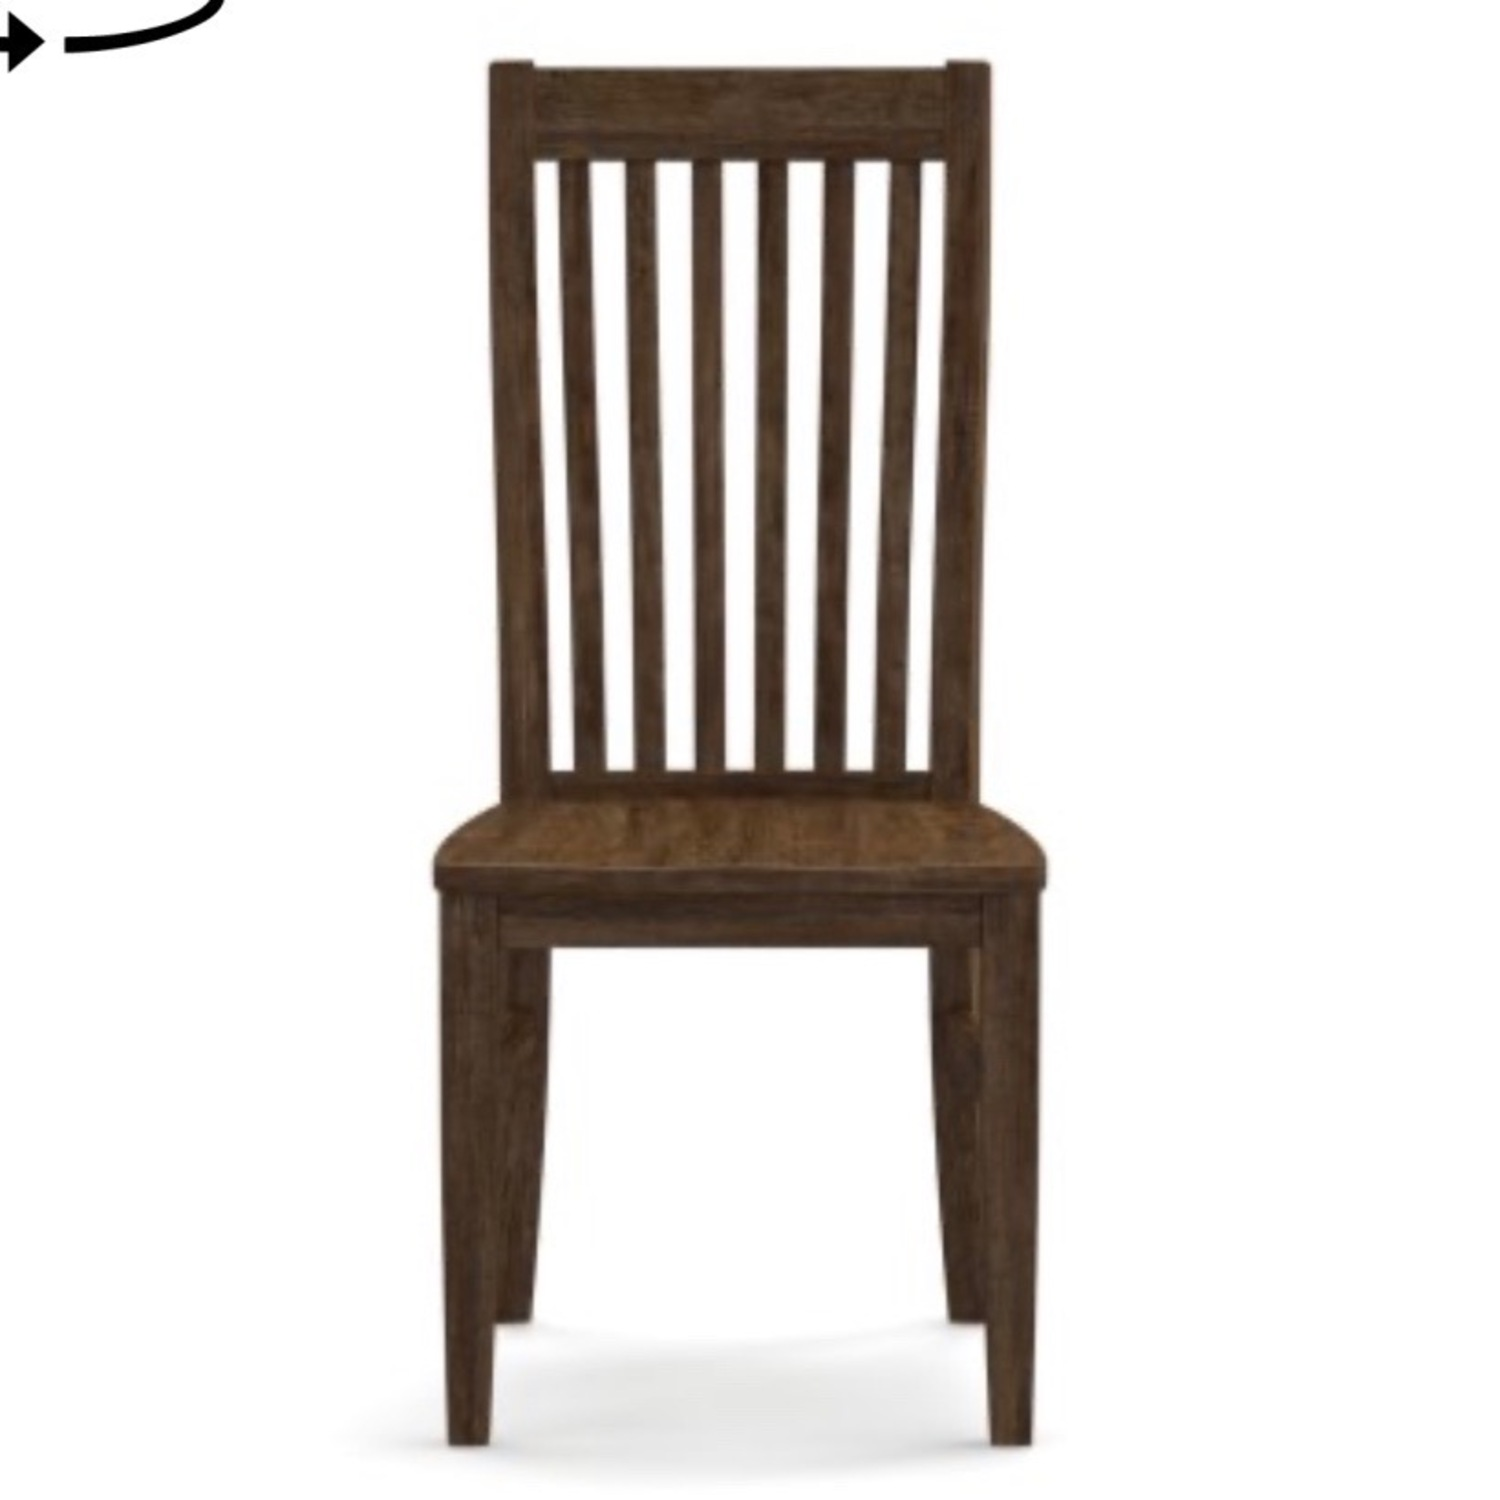 Pottery Barn Rustic Mahogany Trieste Chairs - image-4